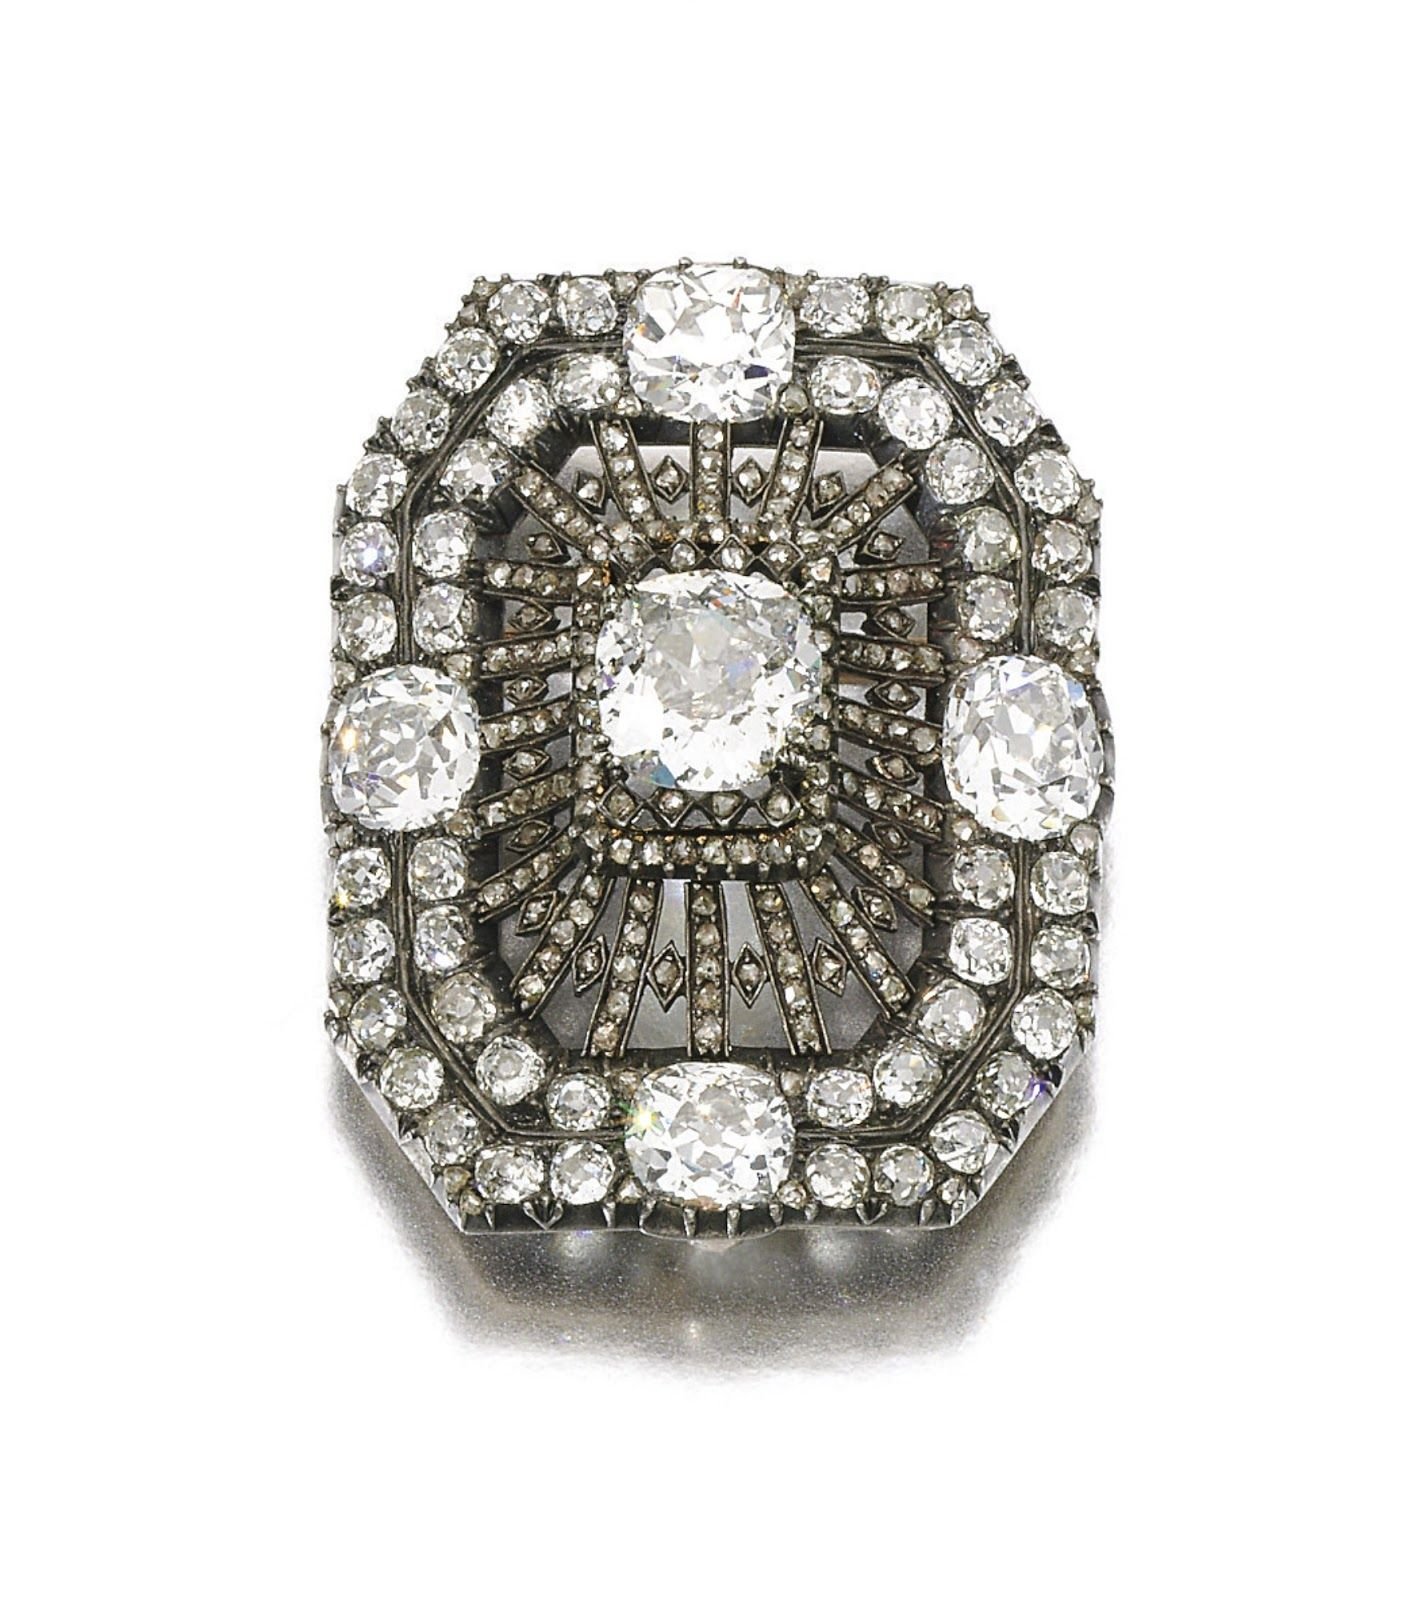 DIAMOND BROOCH, MID 19TH CENTURY The octagonal open work plaque set with cushion-shaped, circular-cut and rose diamonds, later brooch fitting. 15,625 GBP